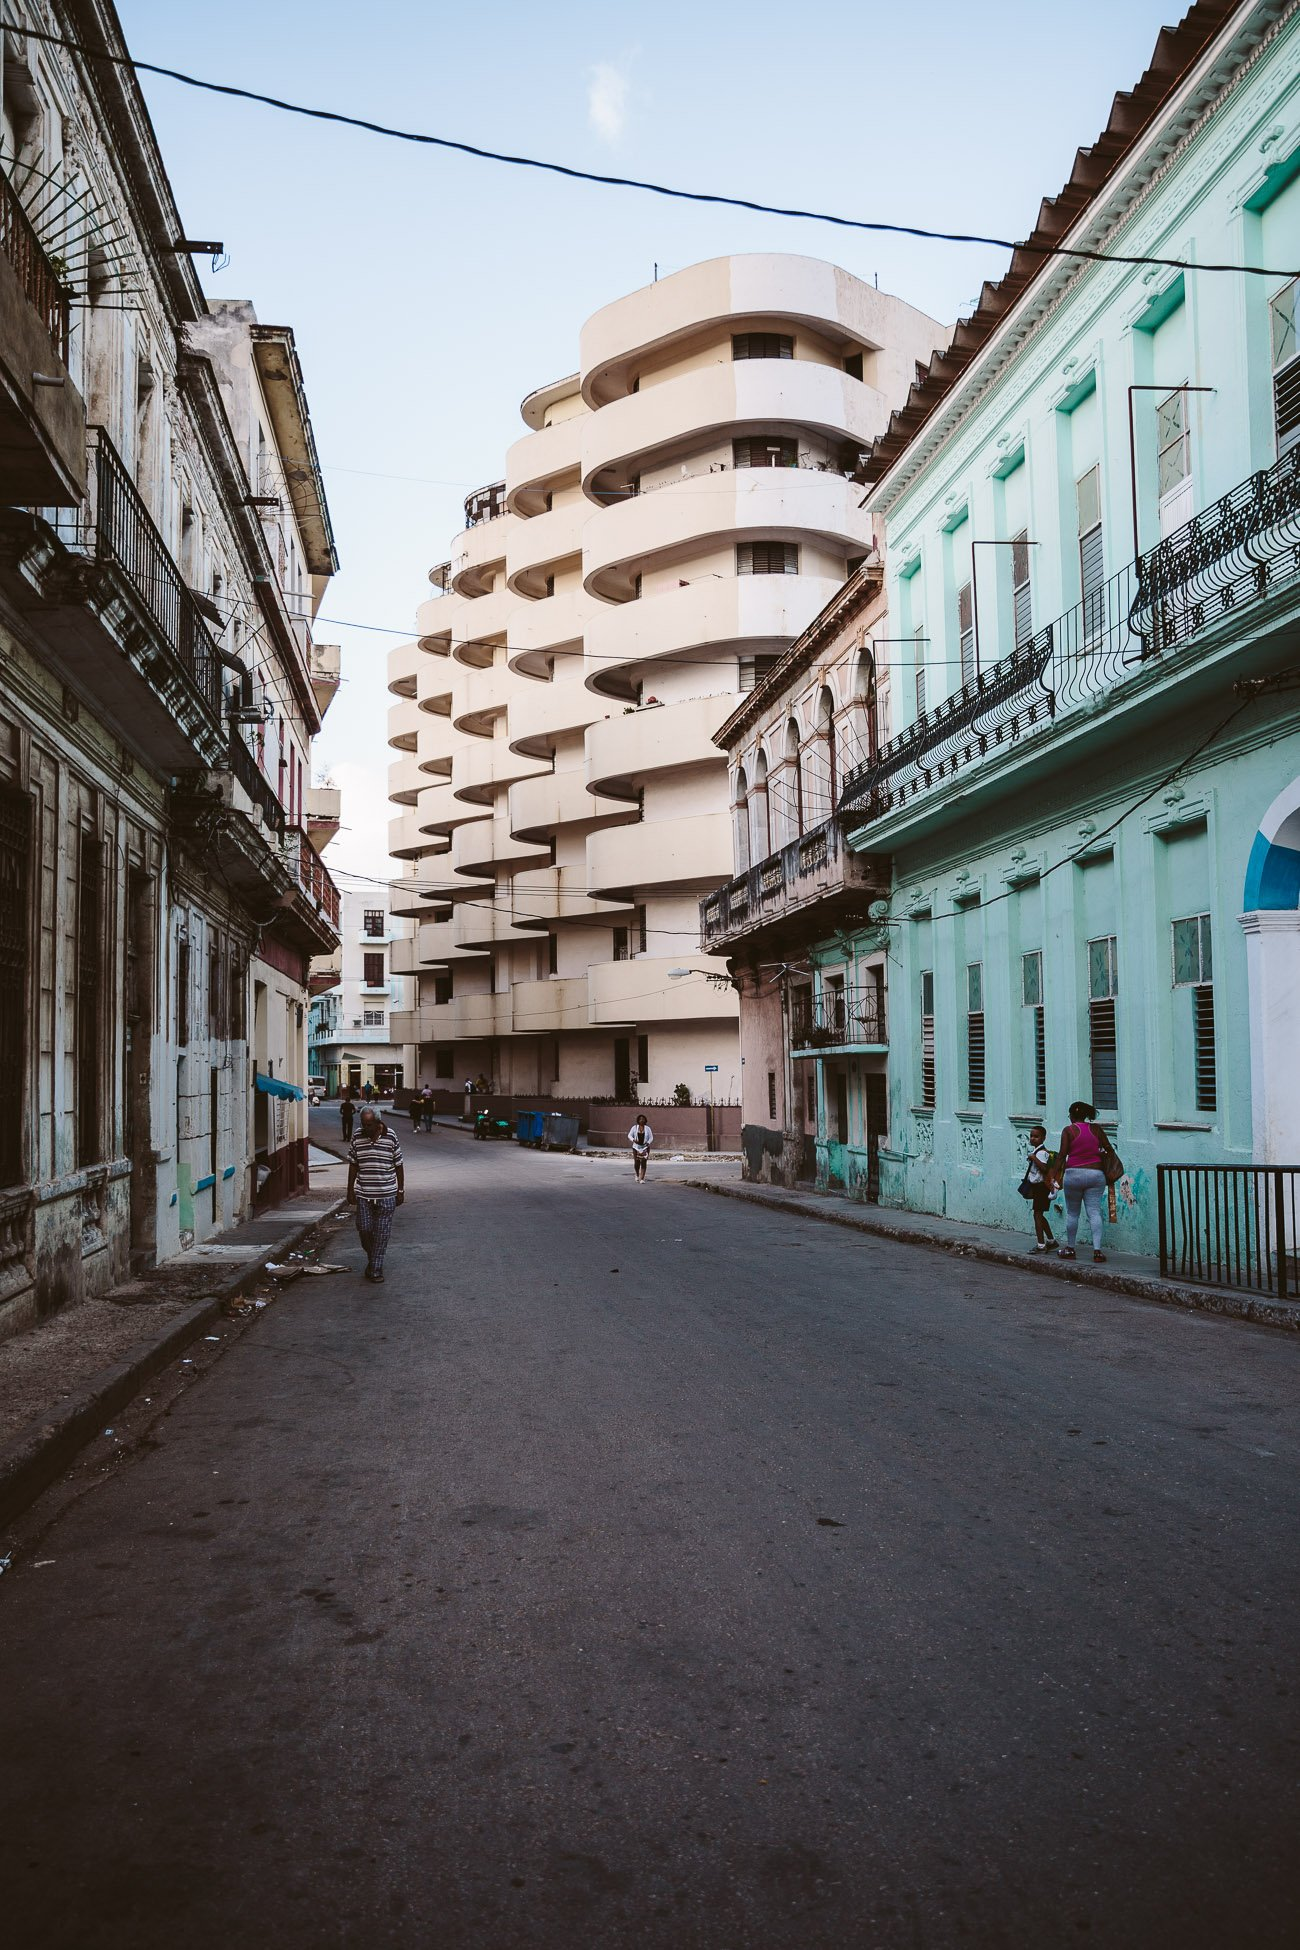 Architecture in Centro Habana district in Havana Cuba